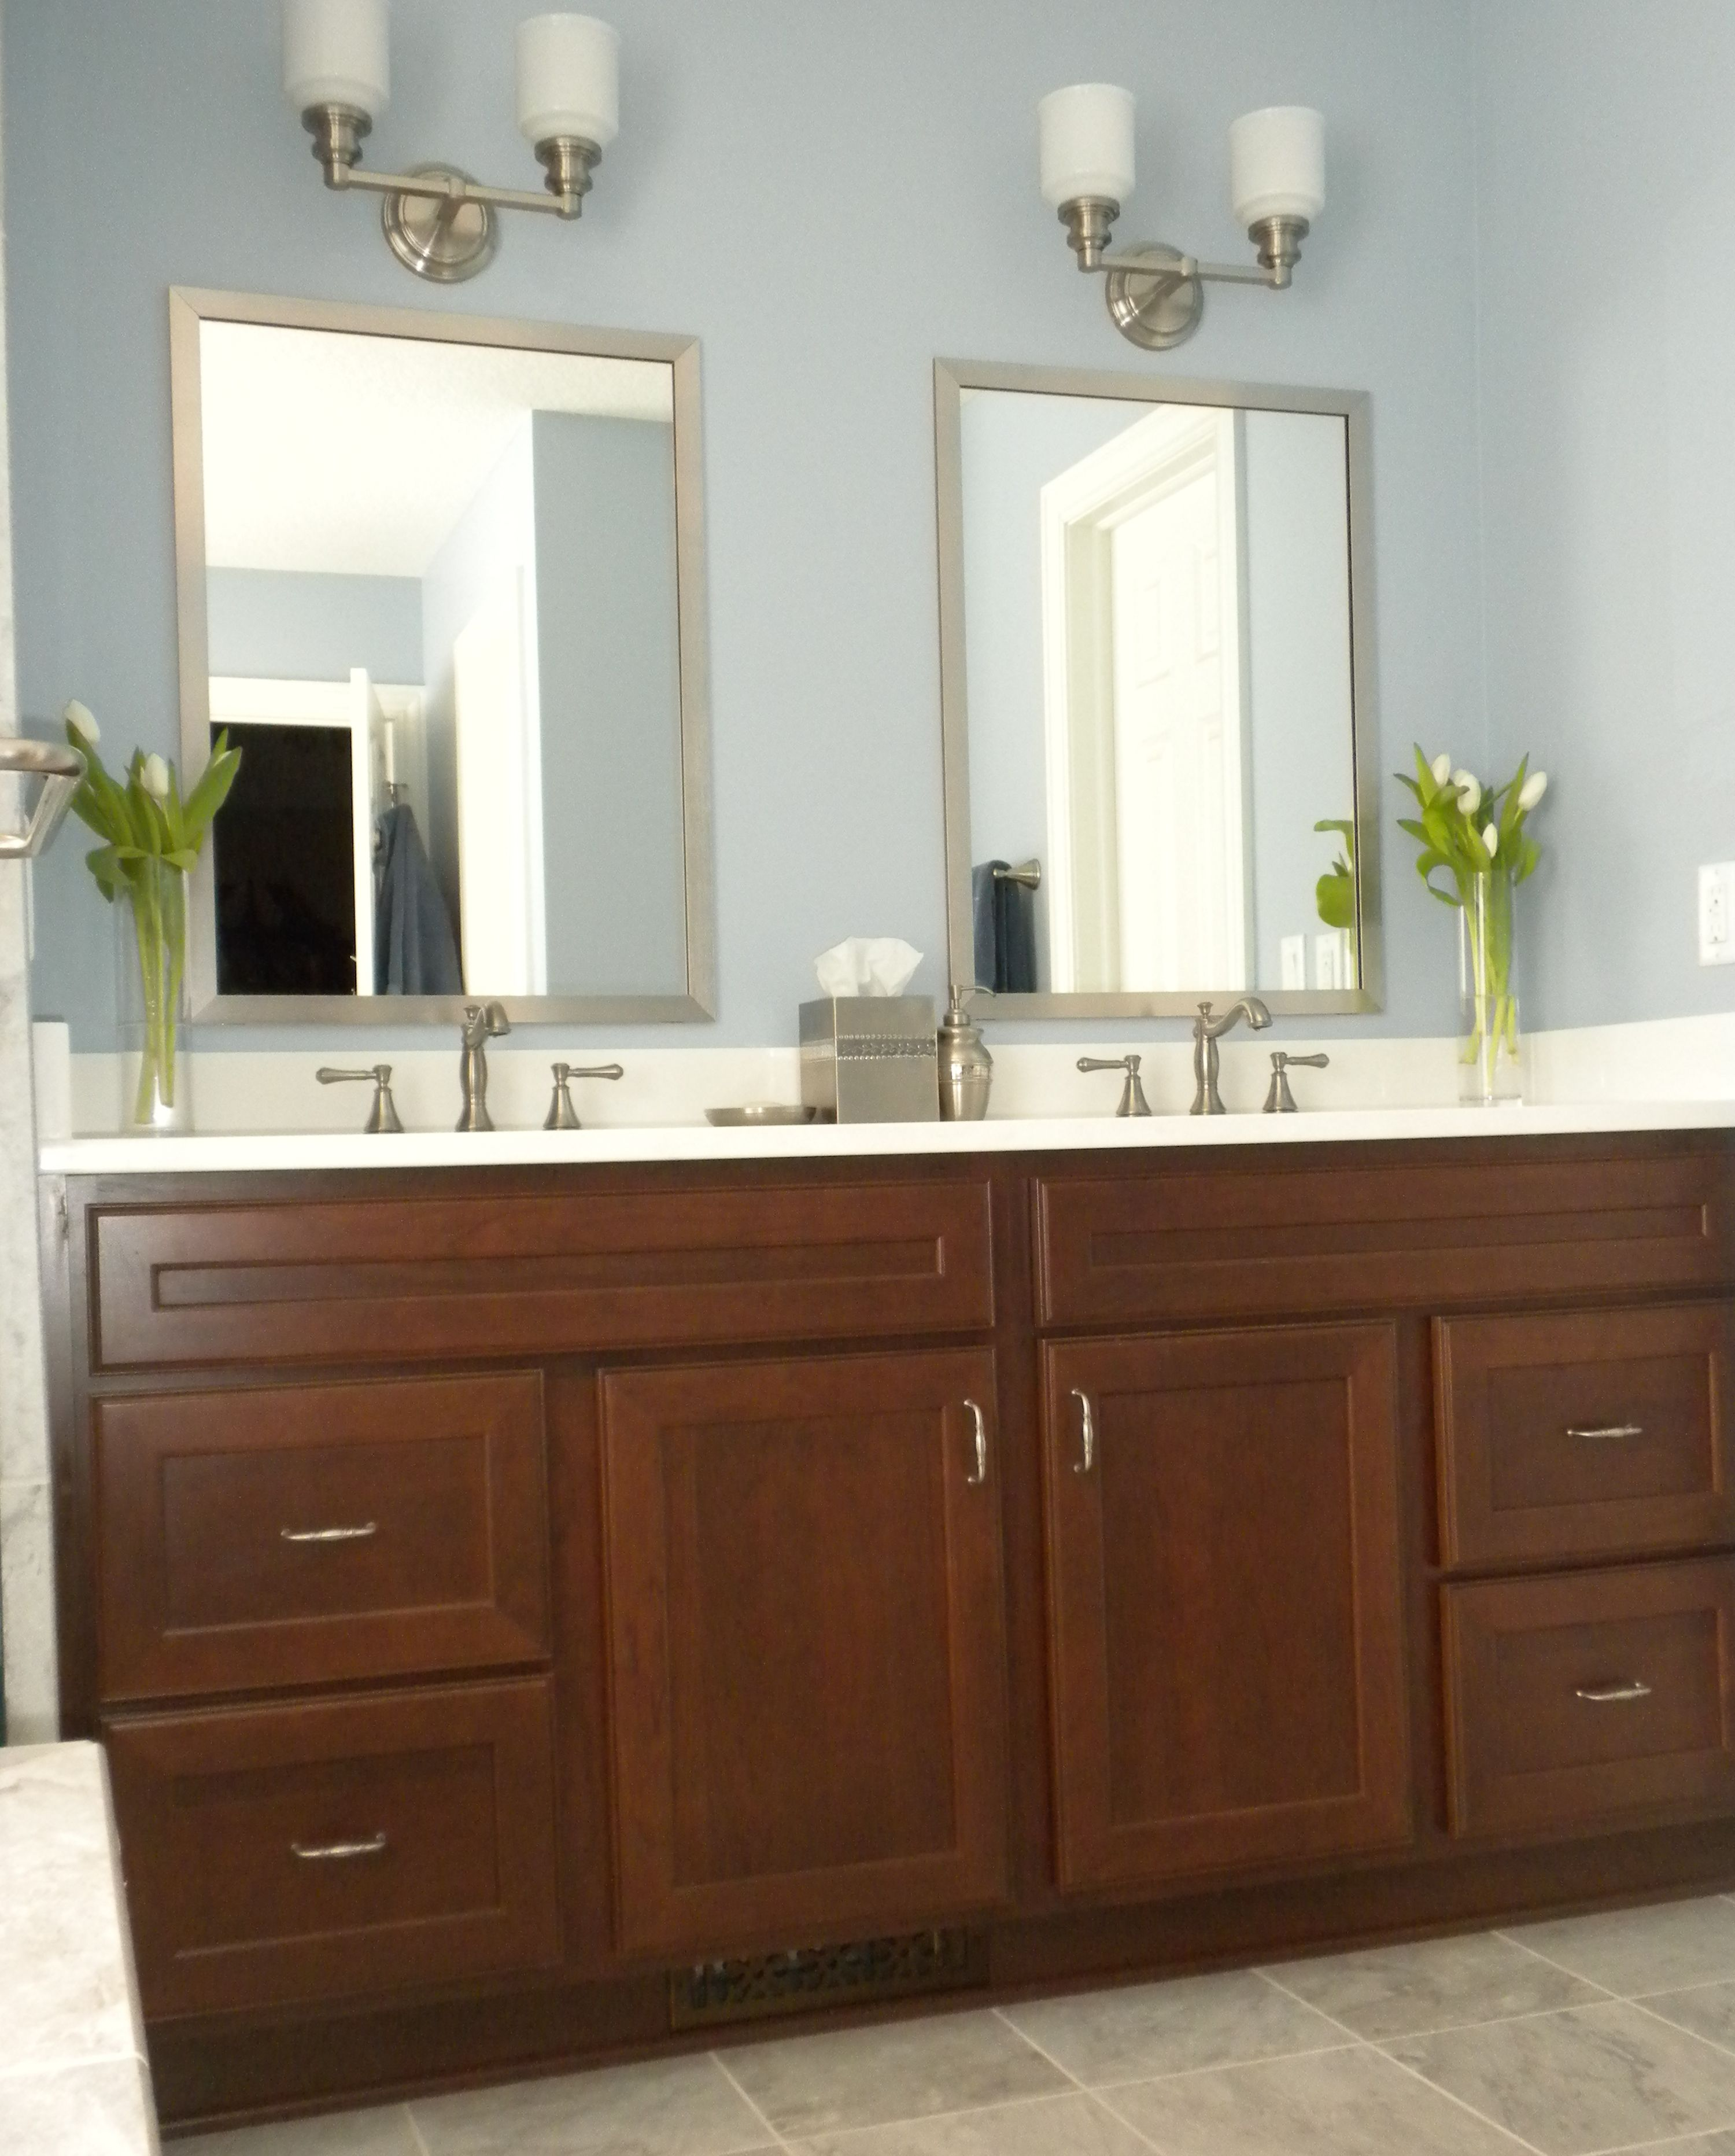 This Vanity Looks So Crisp And Clean With The Contrast